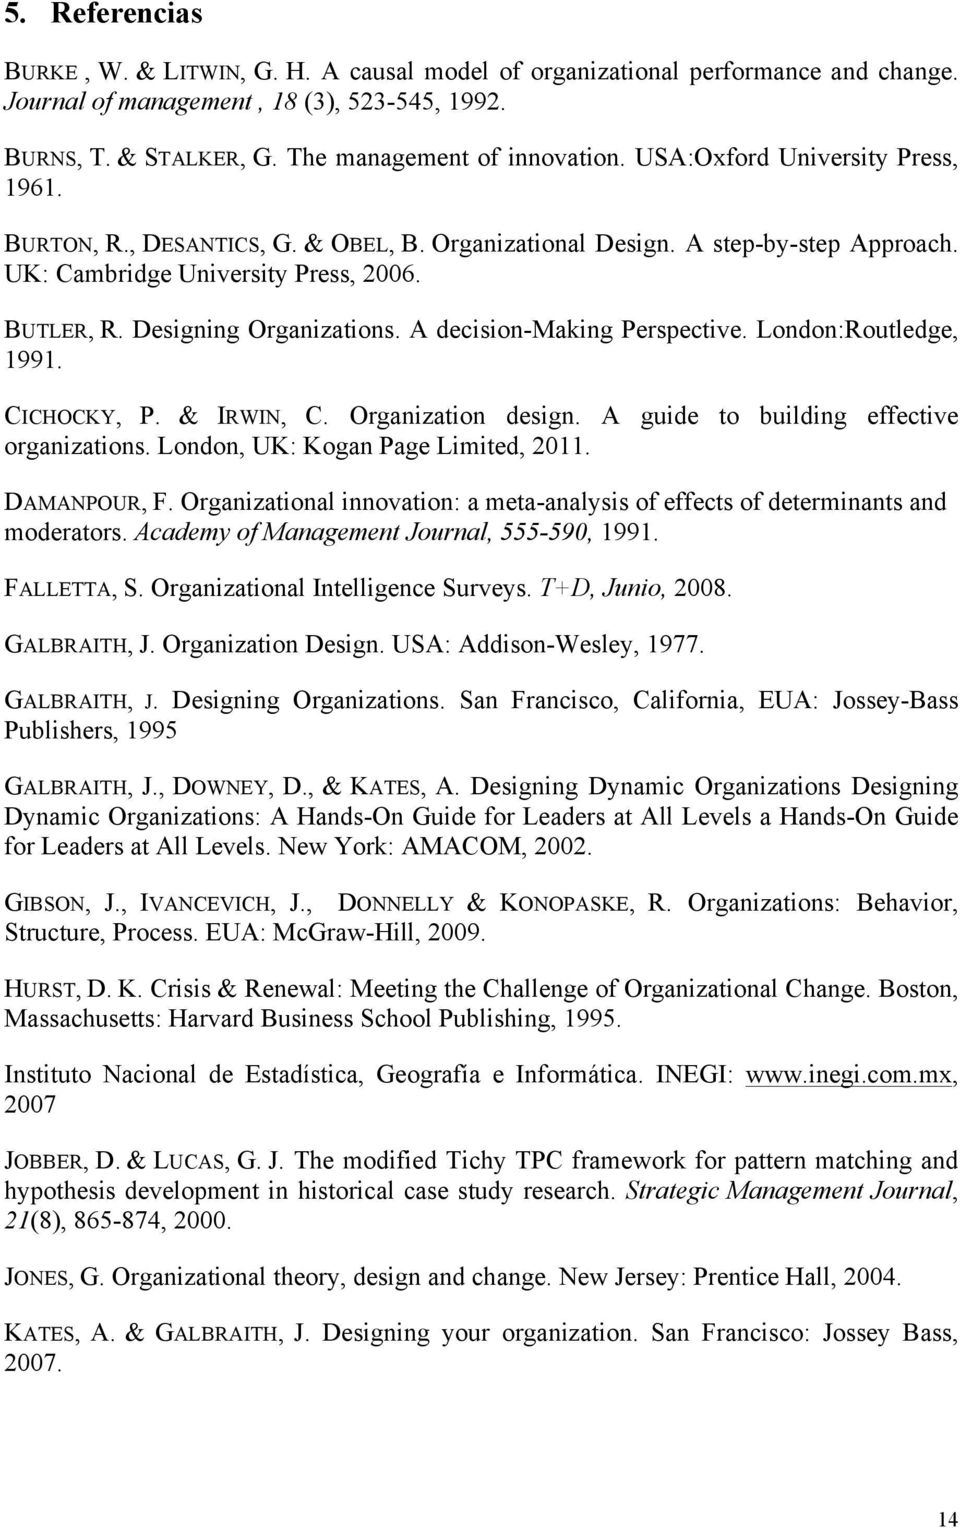 A decision-making Perspective. London:Routledge, 1991. CICHOCKY, P. & IRWIN, C. Organization design. A guide to building effective organizations. London, UK: Kogan Page Limited, 2011. DAMANPOUR, F.